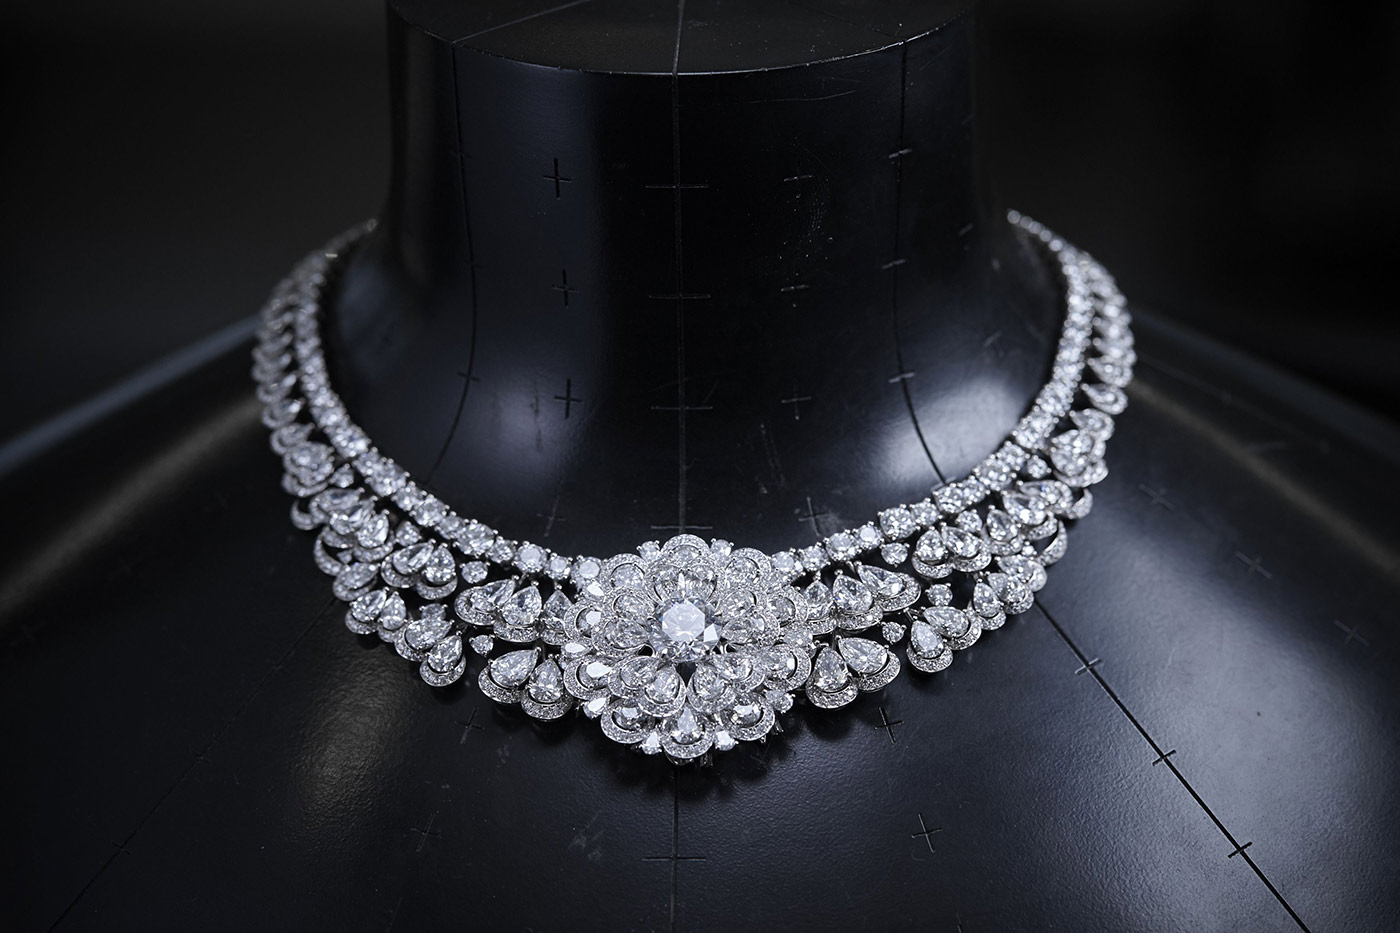 Chopard 'Queen of Kalahari' necklace with pear and brilliant cut diamonds